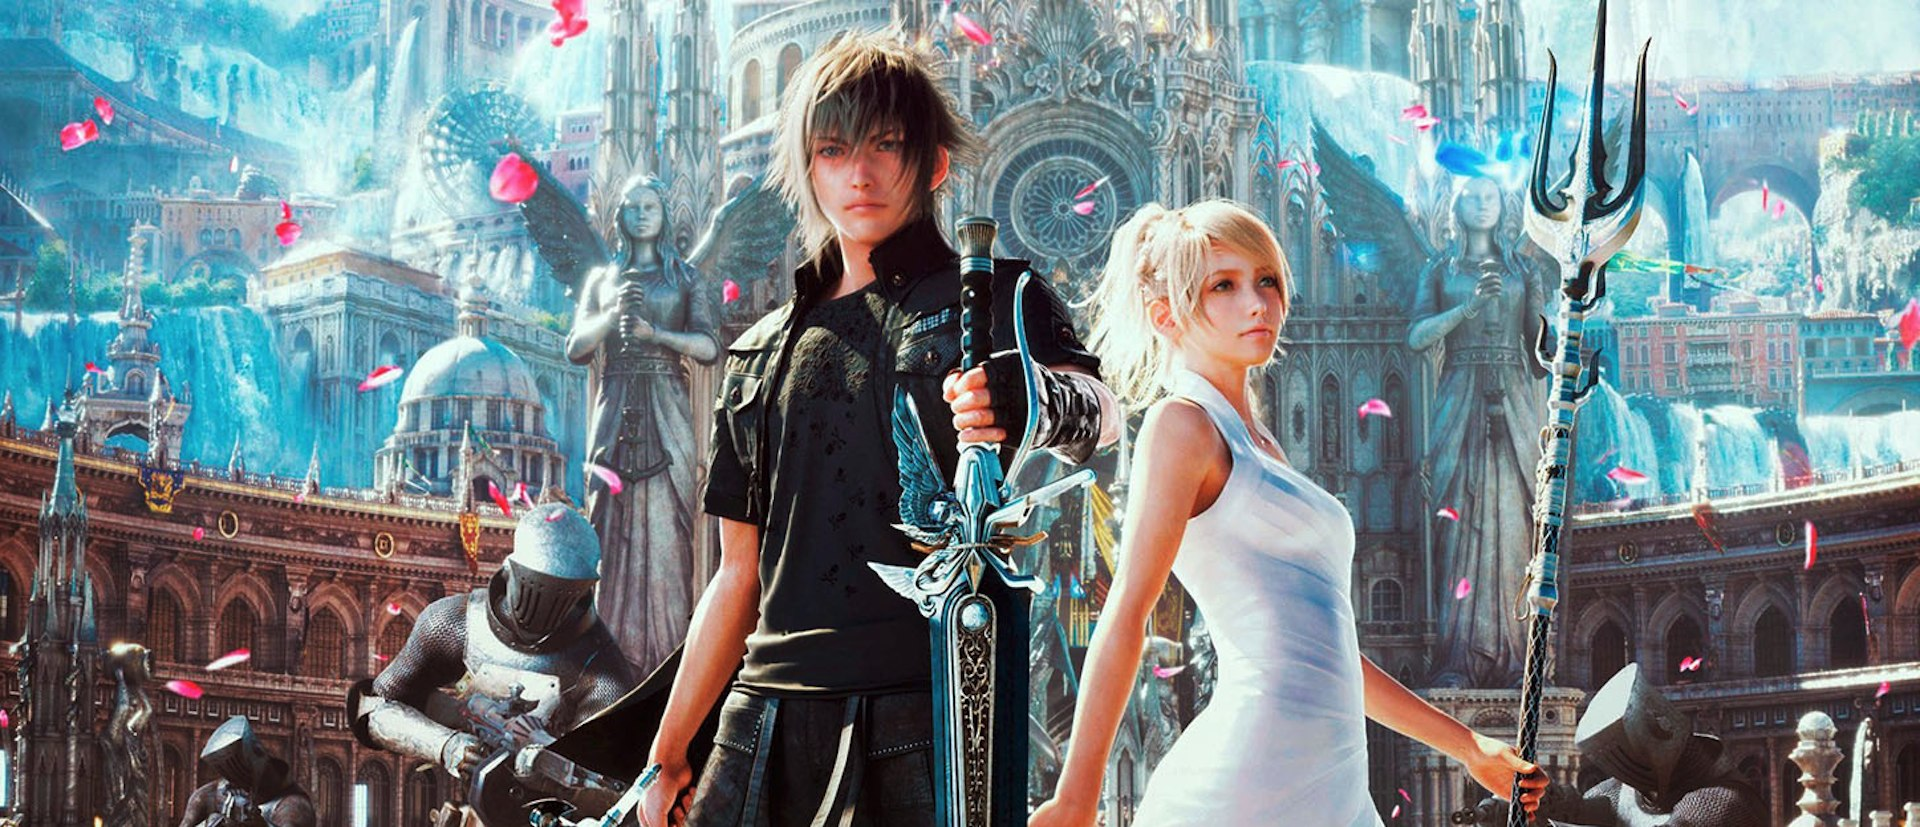 Fusing Magic and Realism. The Art of Final Fantasy XV